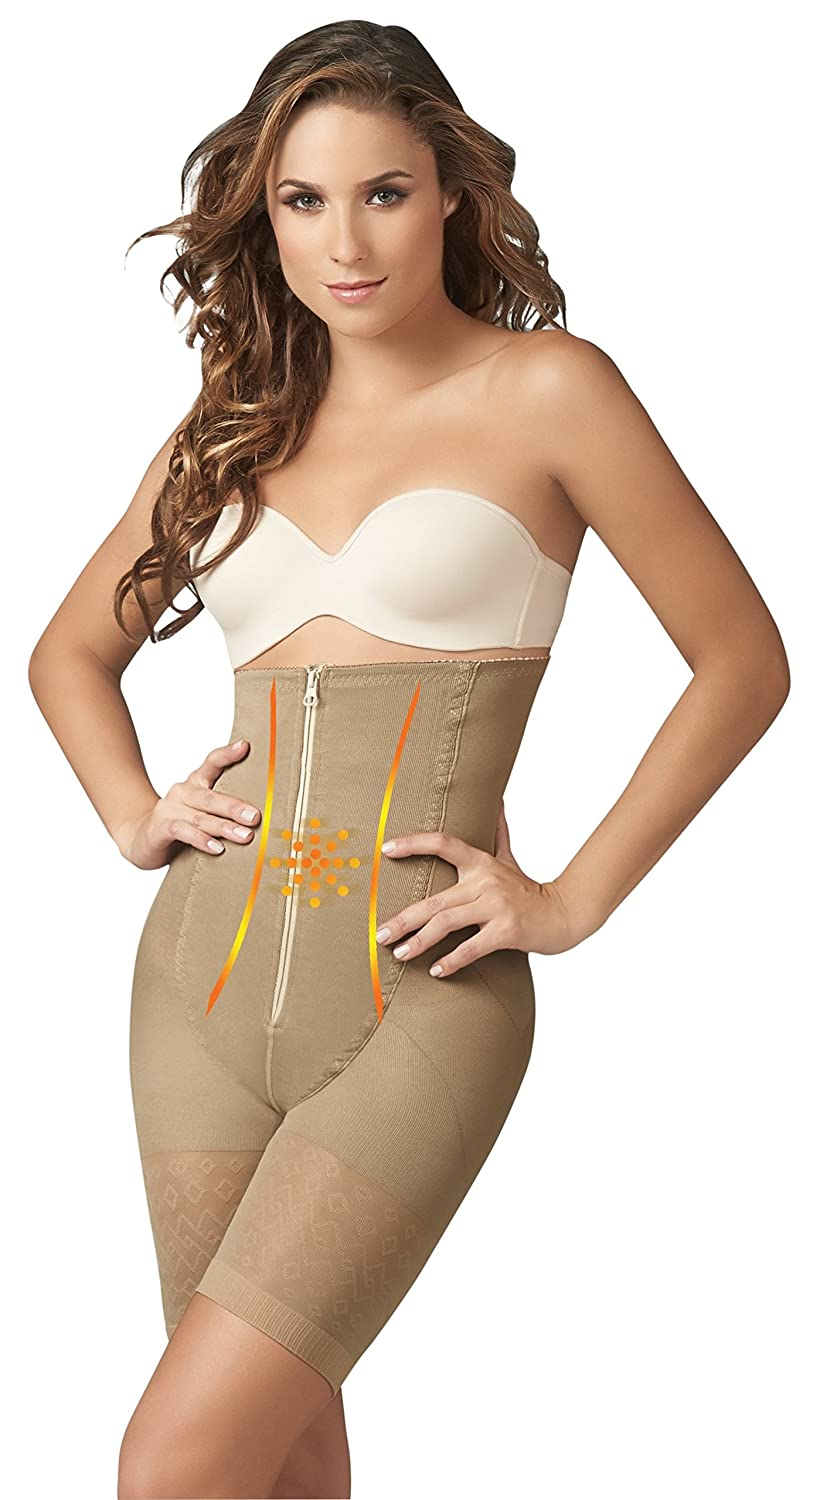 894051c31ed Amazon.com  ShapEager Braless Waist Cincher Shapes The Body Lift Up The  Buttocks Body Shaper Black  Clothing